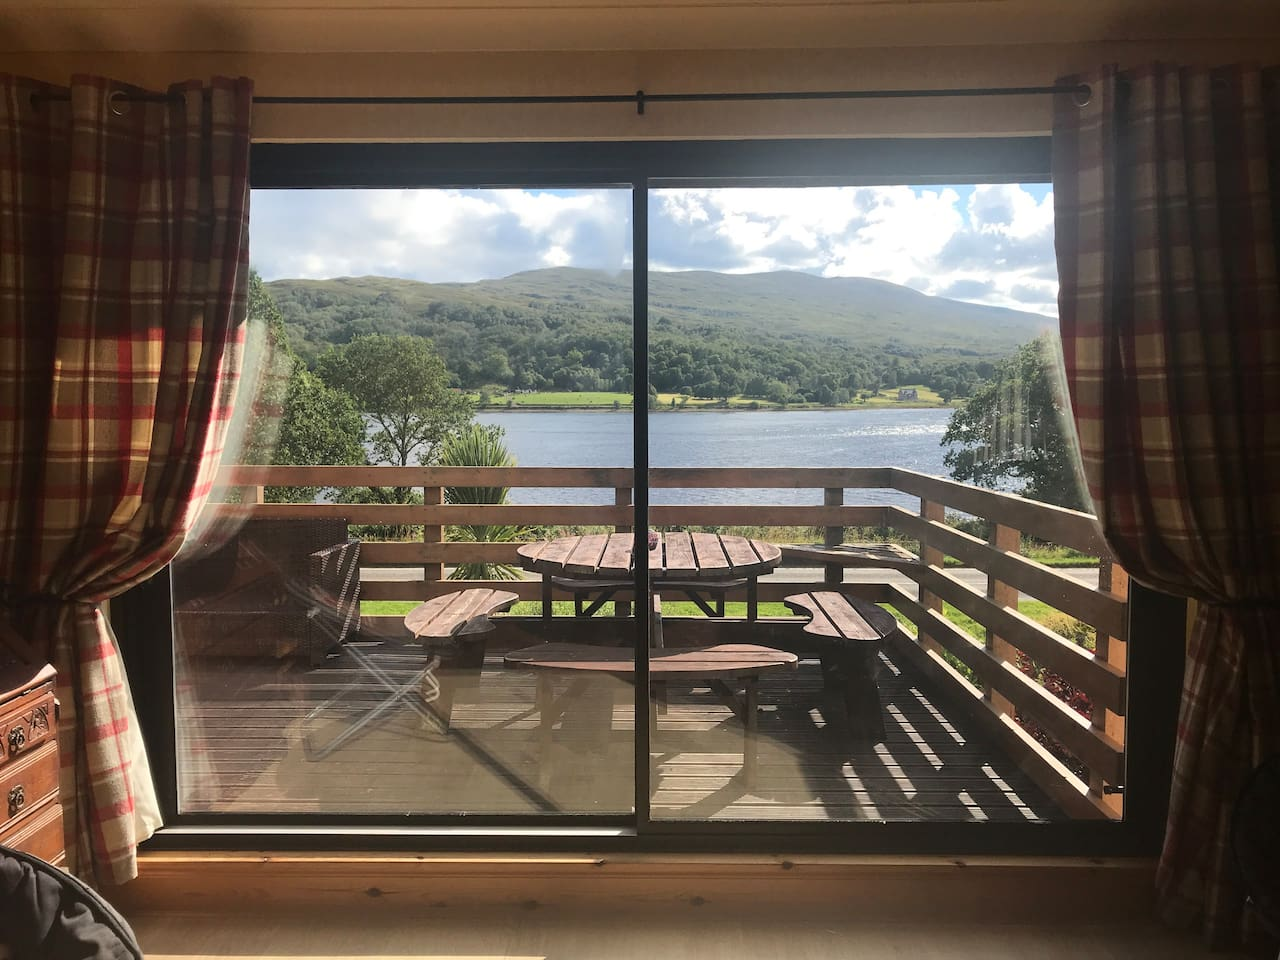 """Welcome to our home """"Solmar"""" which translates to sun & sea. This is the view from the lounge over looking Loch Eil"""